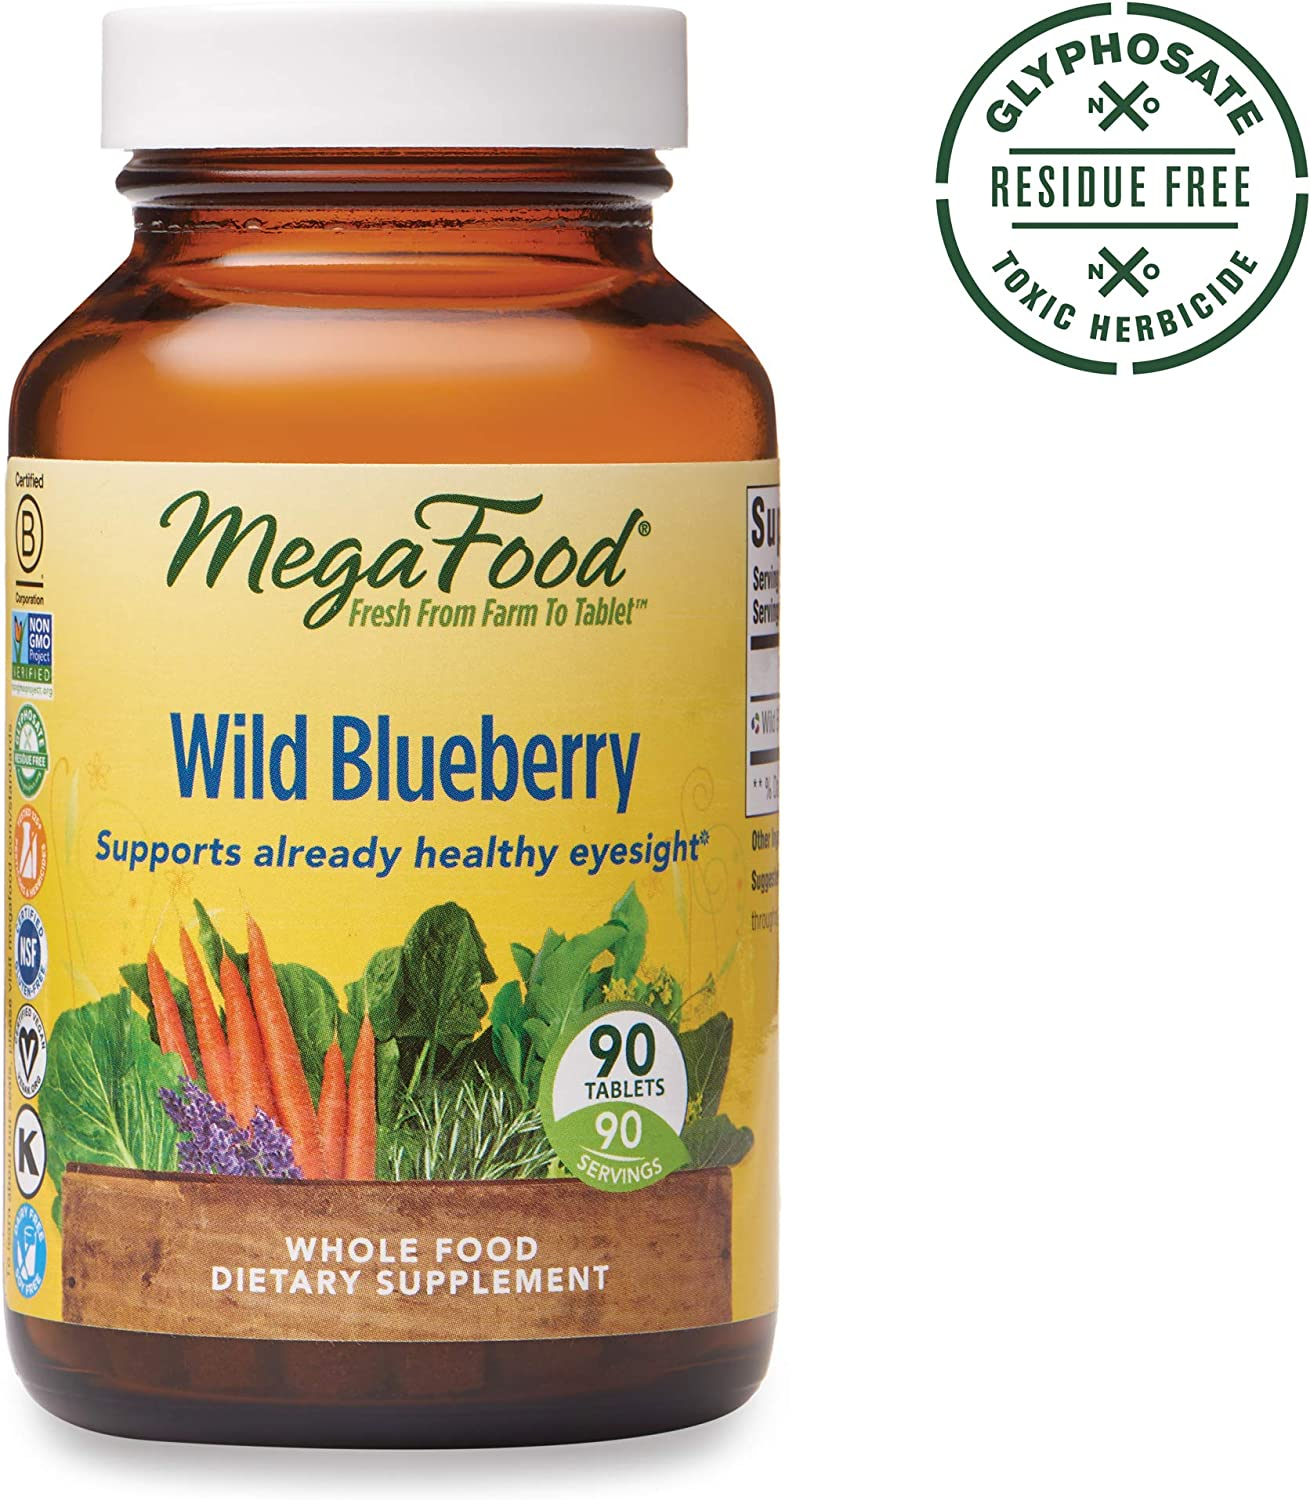 MegaFood, Wild Blueberry, Supports Healthy Eyesight, Chewable Whole Food Supplement, Gluten Free, Vegan, 90 Tablets (90 Servings) (FFP)